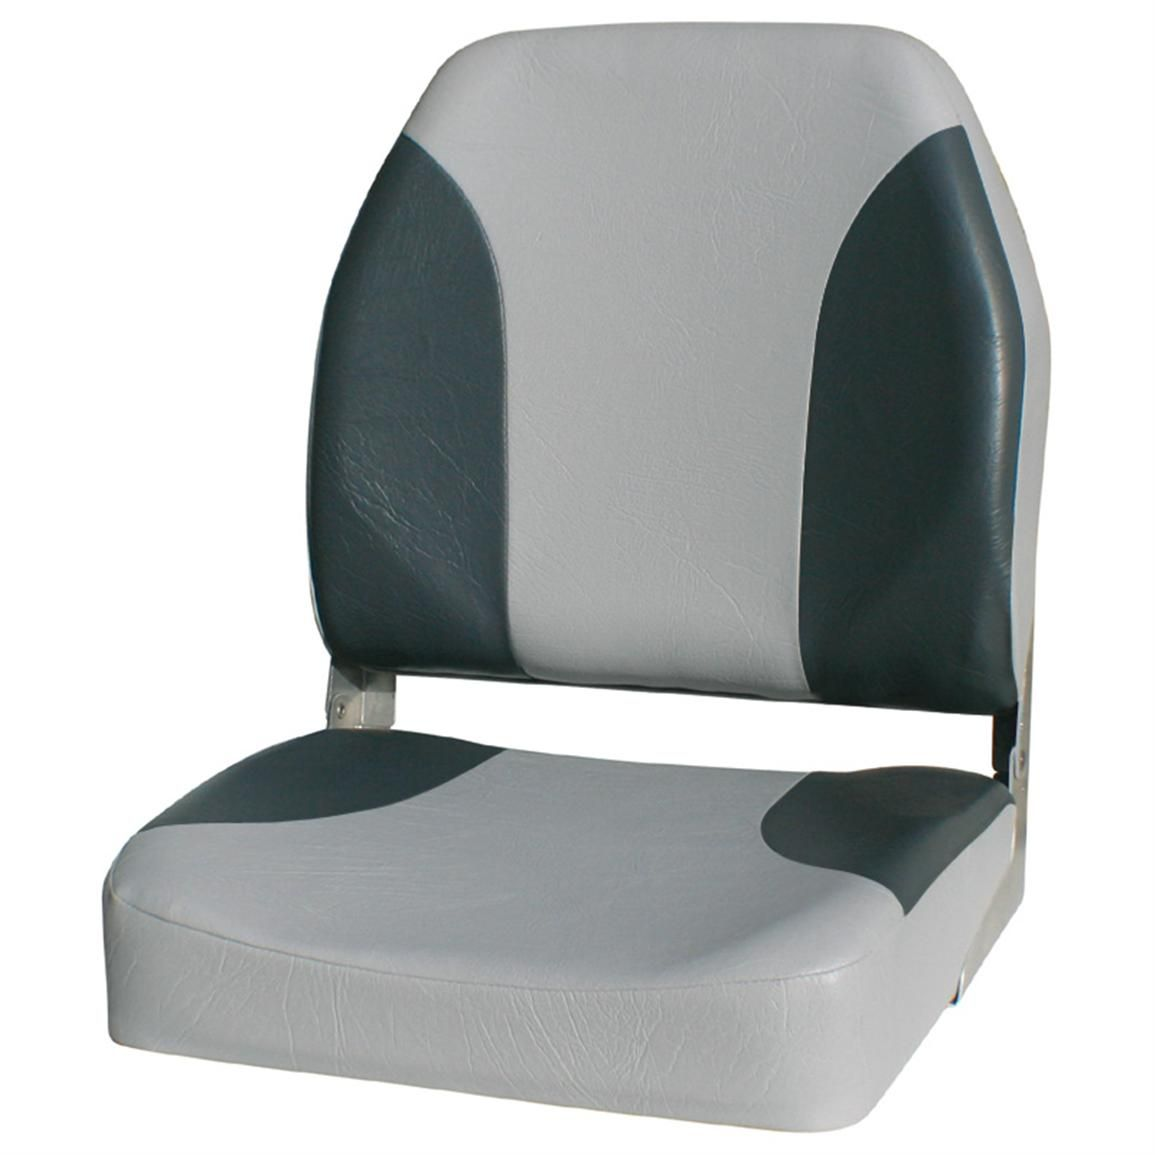 fishing chair clamps cover rentals los angeles wise premium big man boat seat